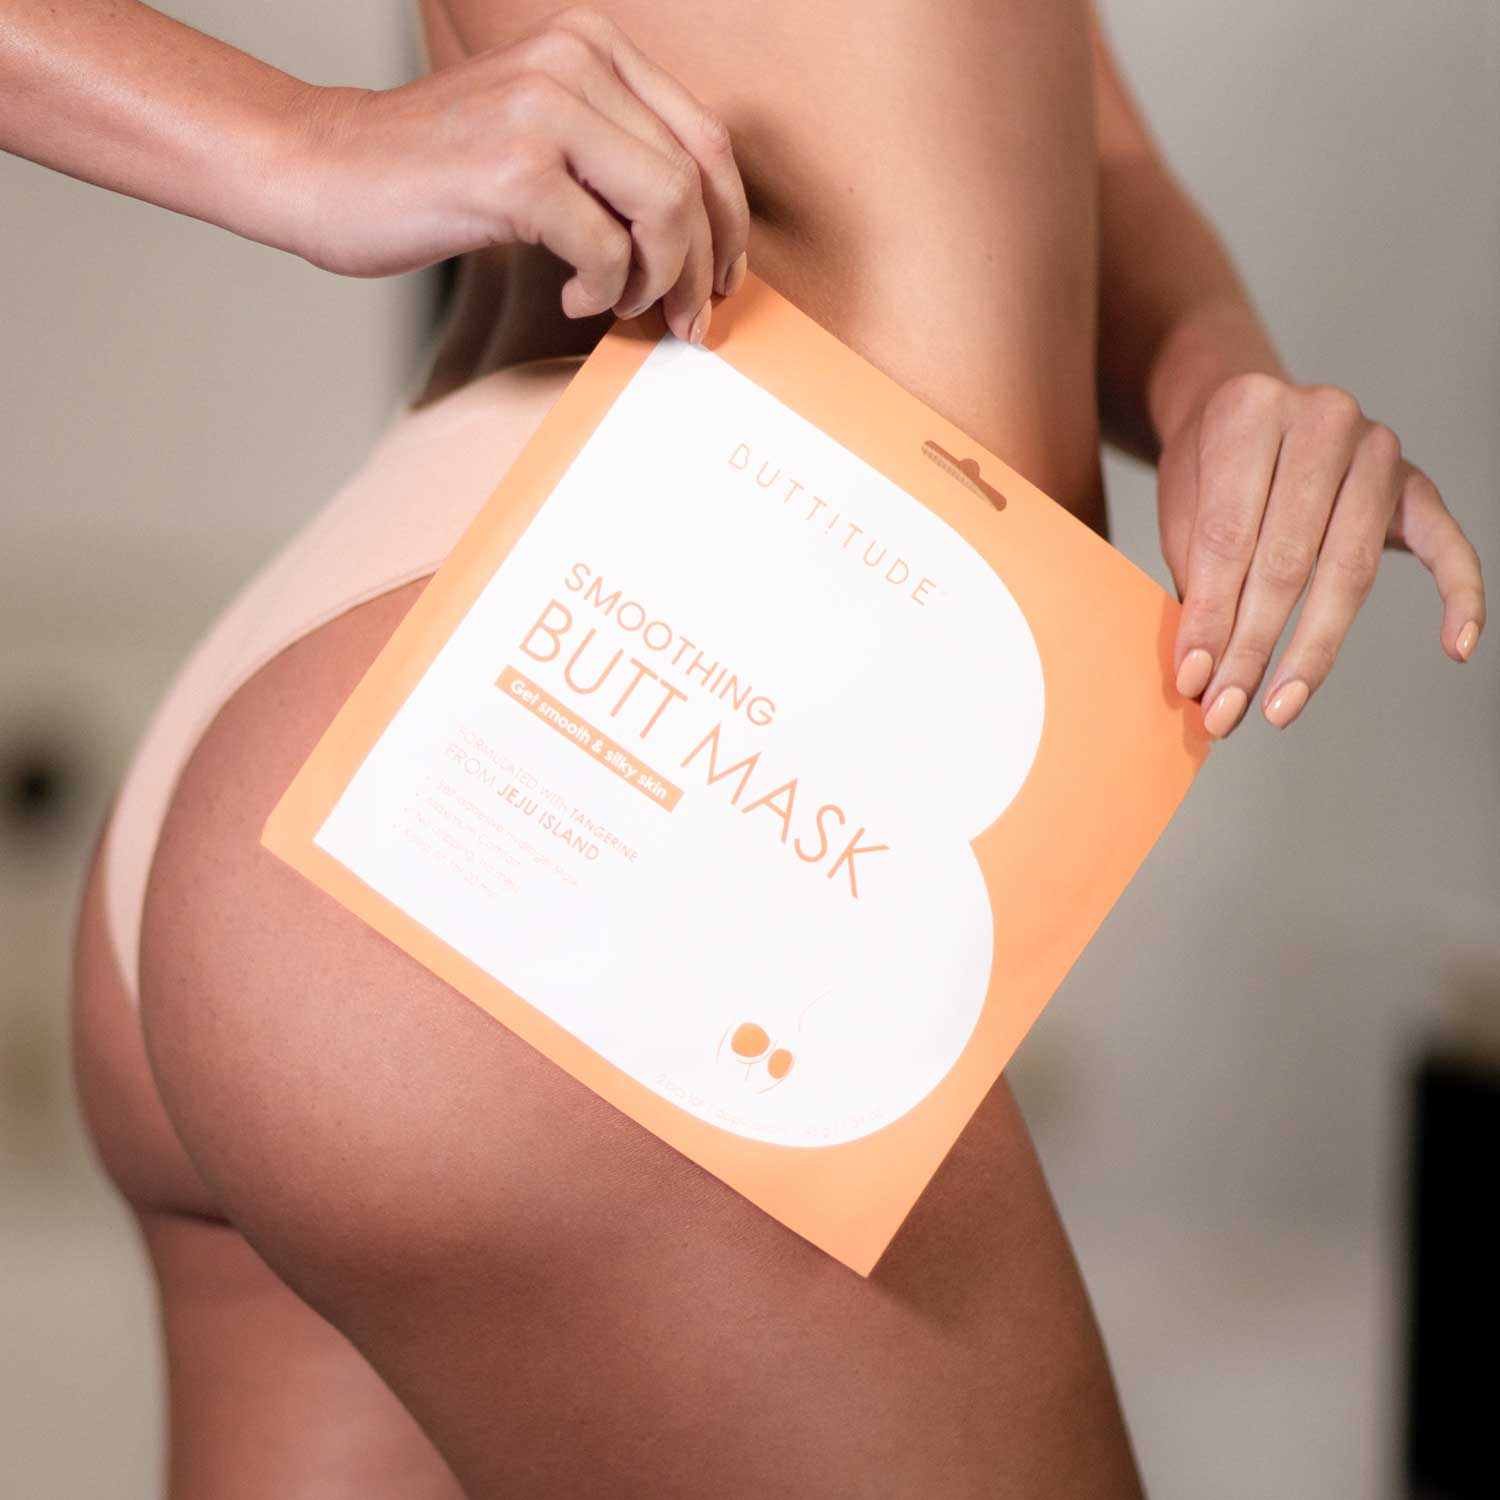 buttitude smoothing sheet mask for your butt